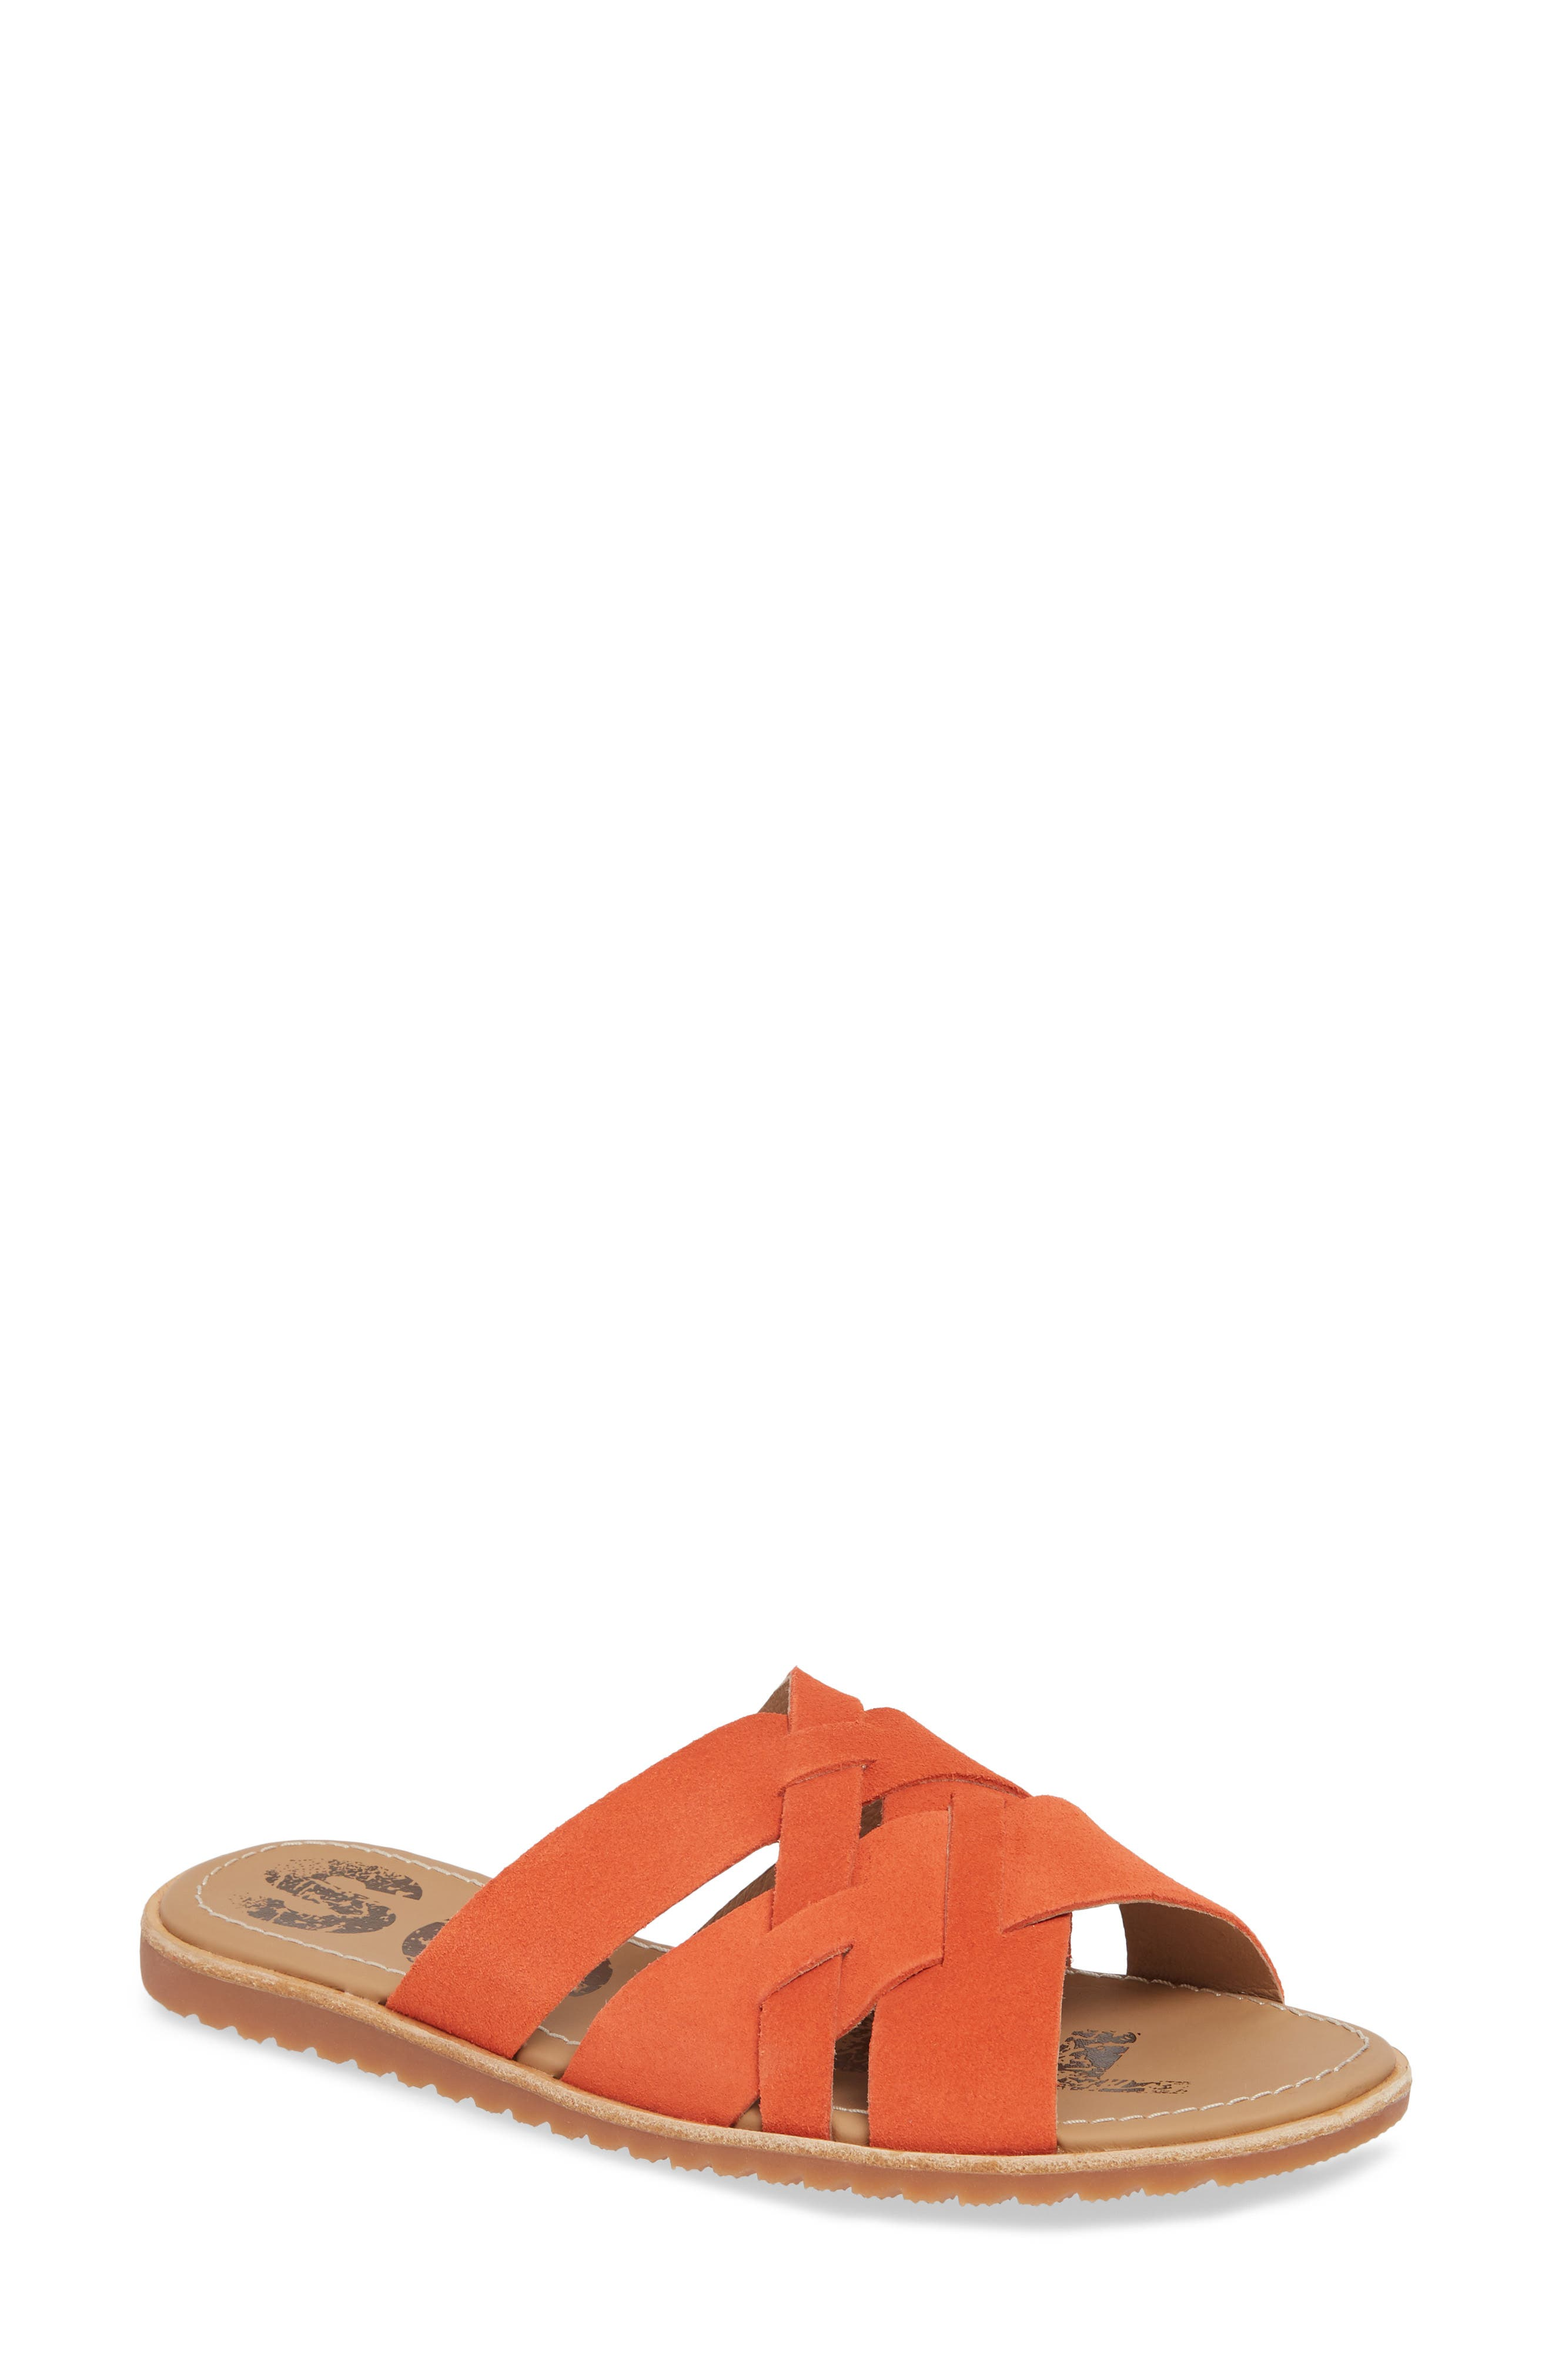 Sorel Ella Slide Sandal, Red